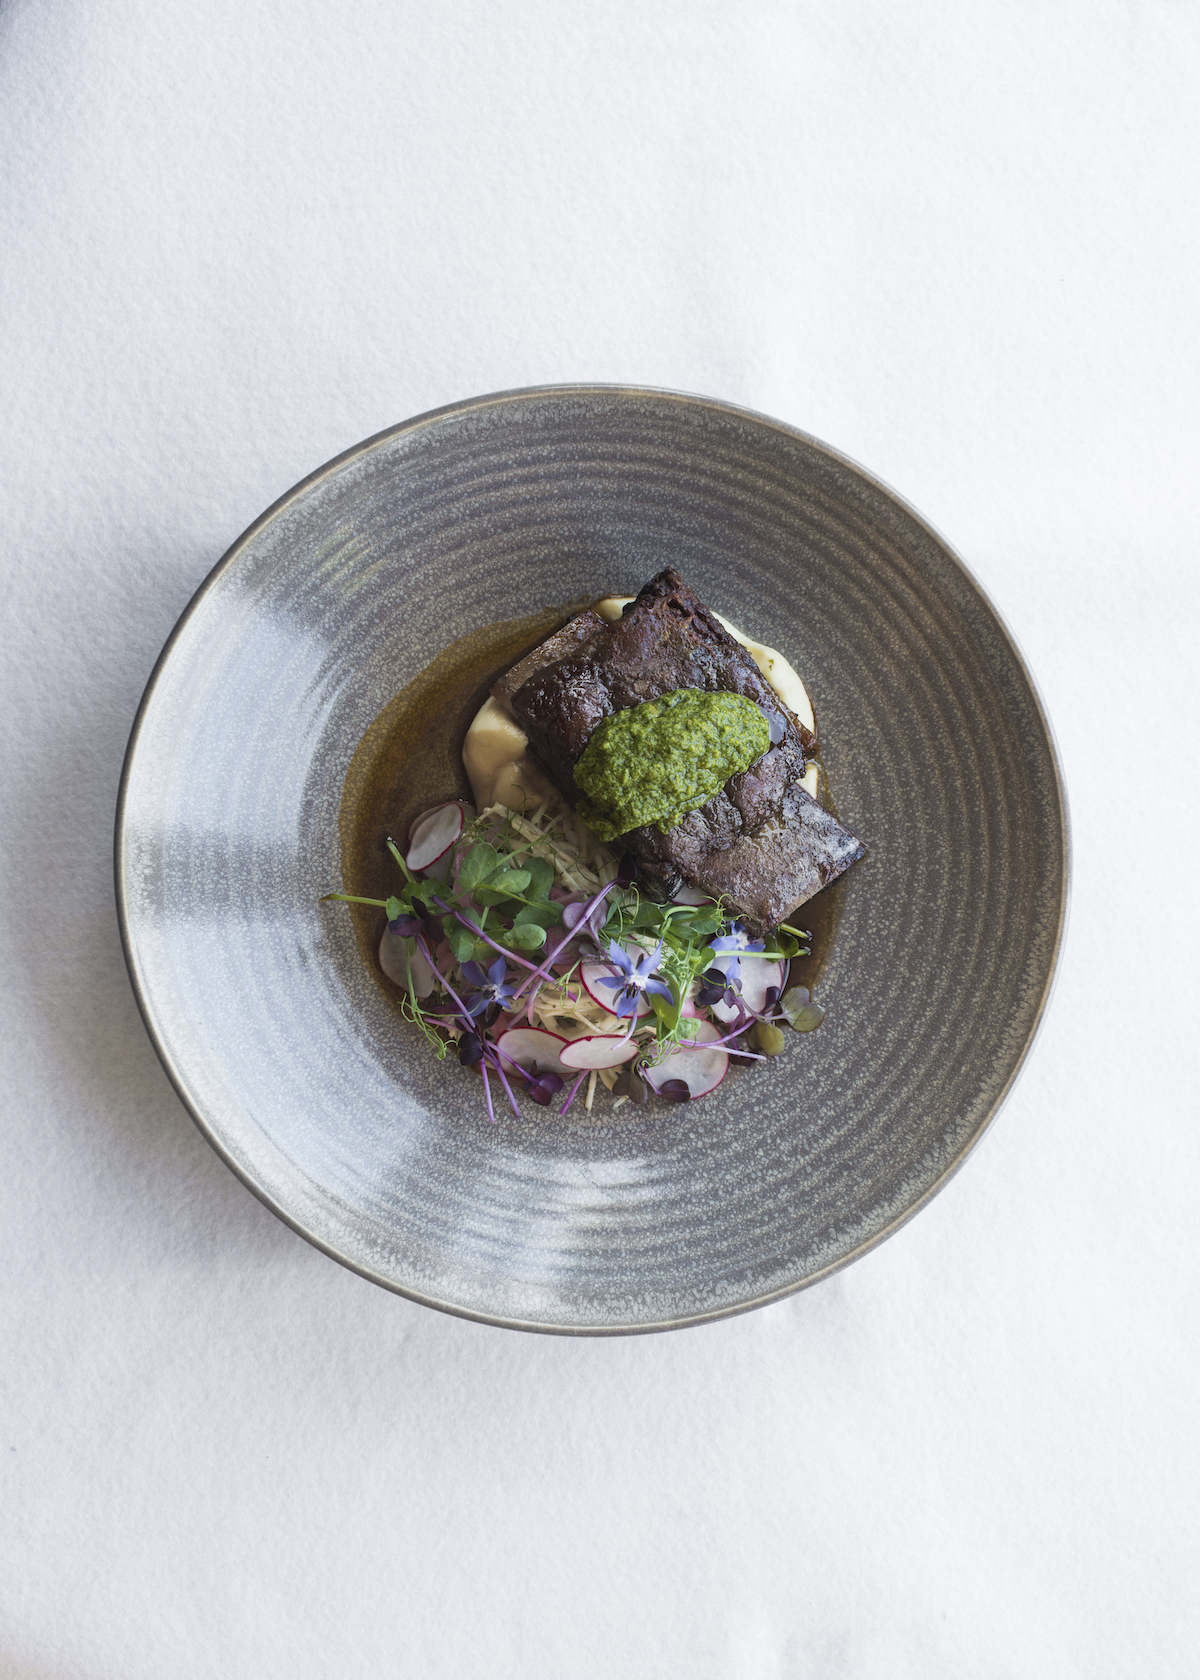 Archive Bar and Bistro, Mudbrick dish: Slow cooked Silver Fern Farms beef short rib with celeriac and fennel remoulade, radish and garden herbs.